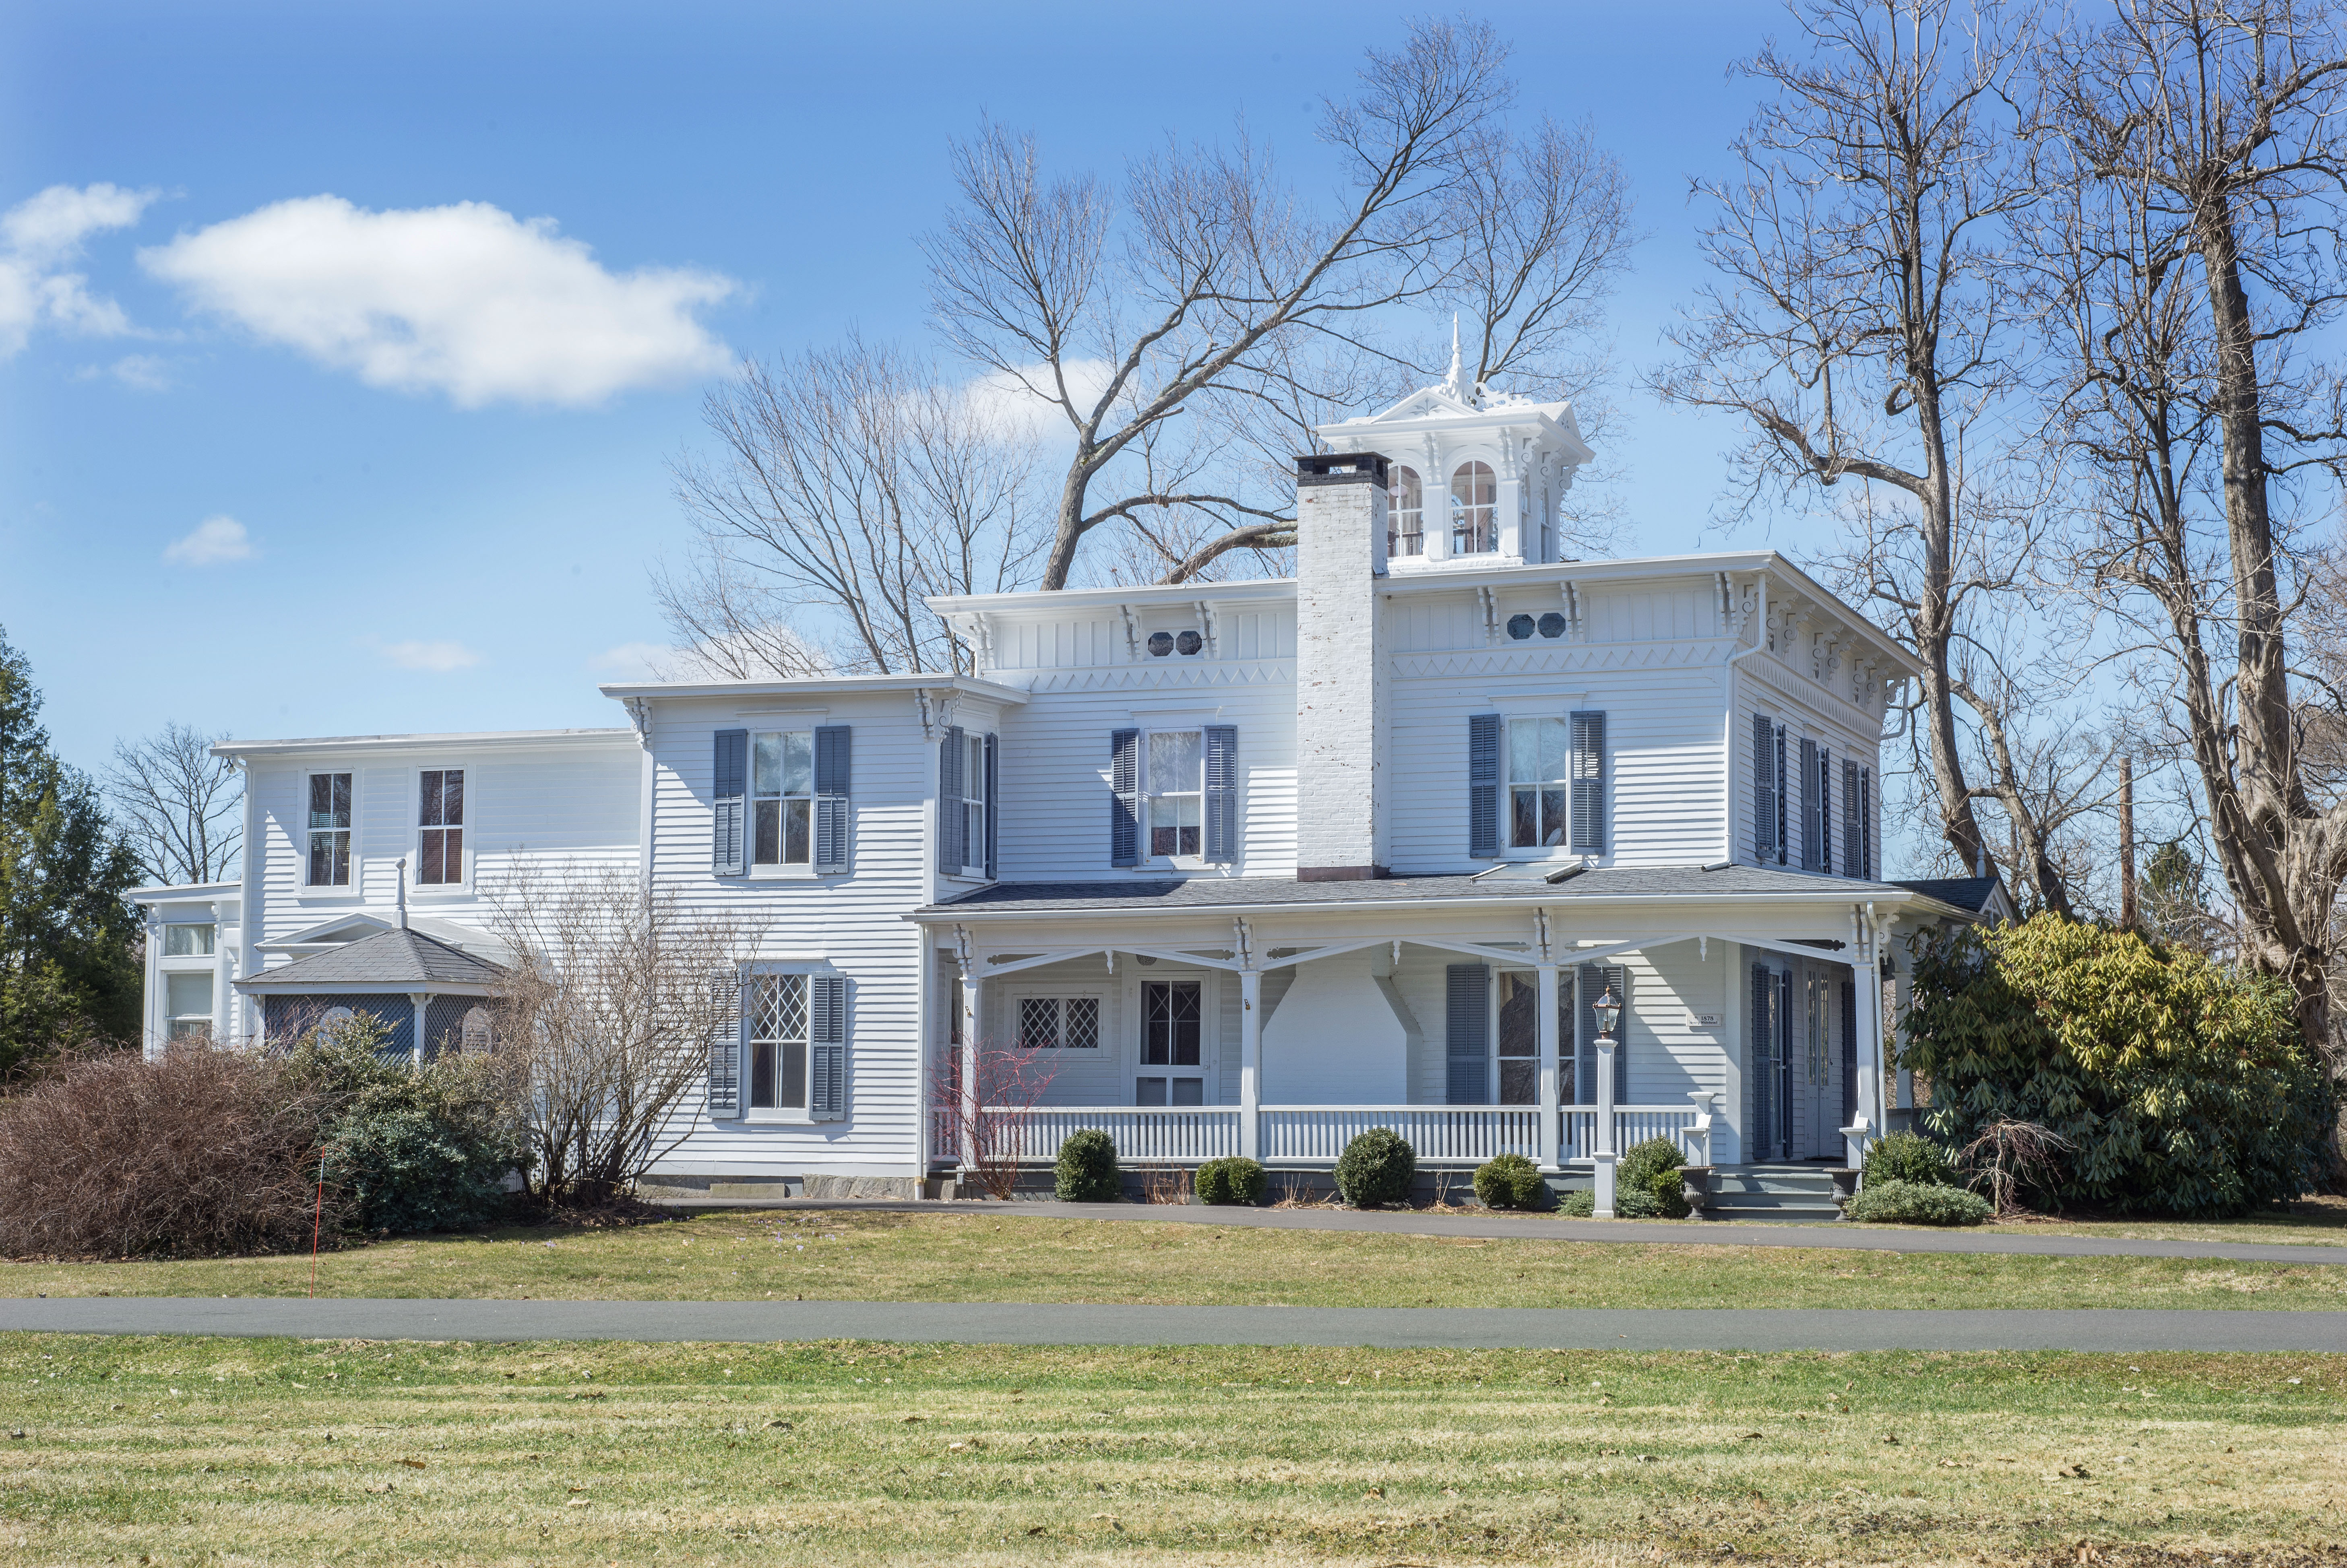 open-houses property at Exquisite Victorian Italianate Antique